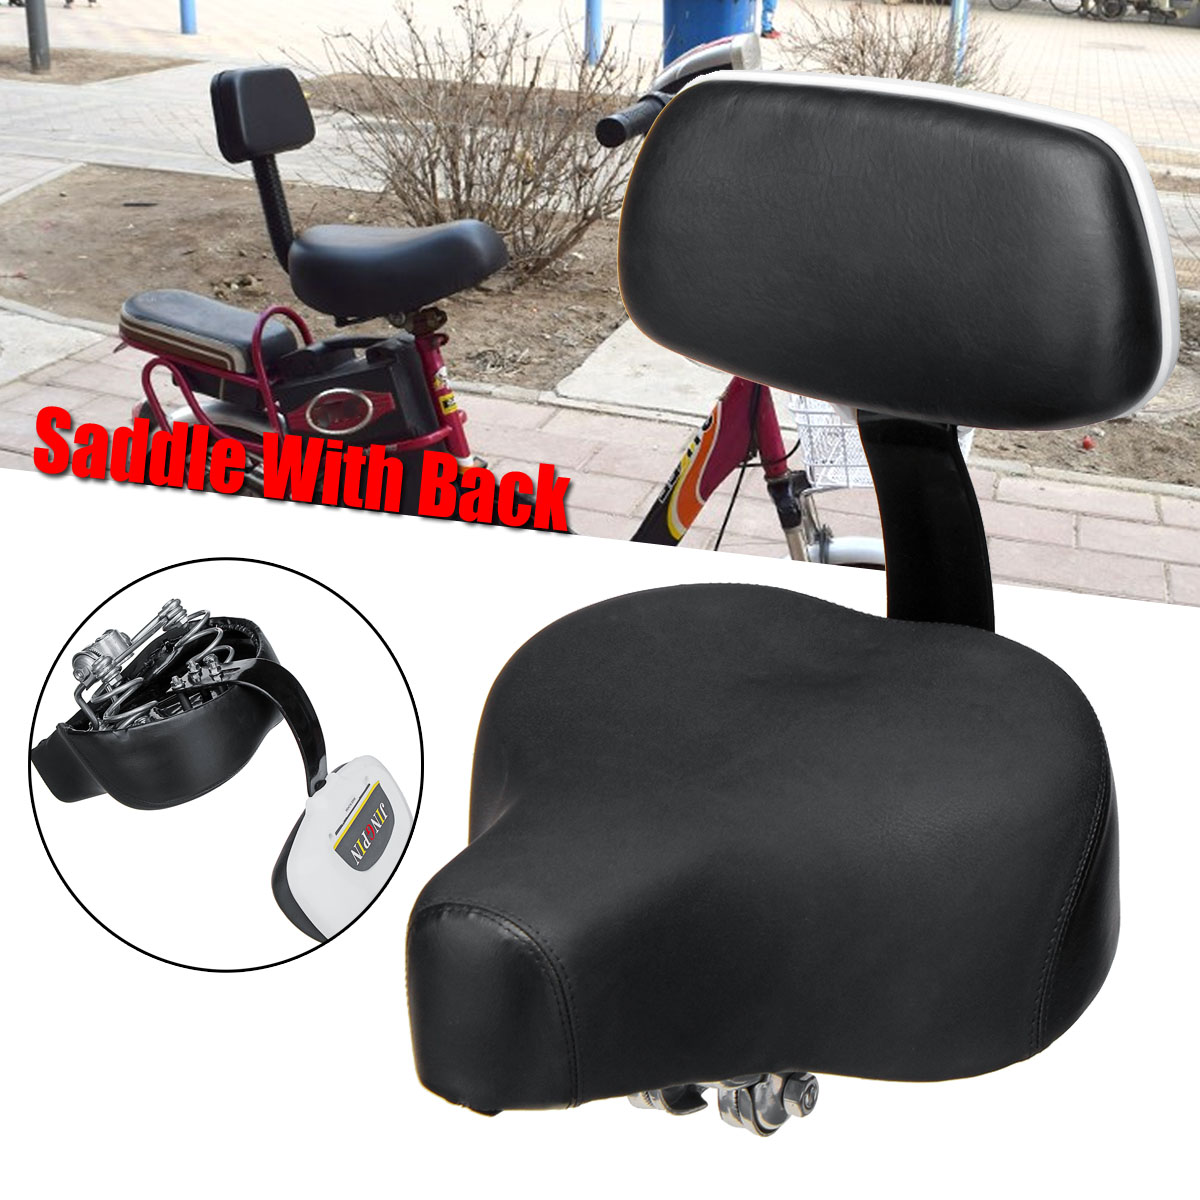 OUTERDO Universal Comfort Gel Tricycle Bike Bicycle Saddle Seat with Back Rest Support PU Leather Cover Bicycle Accessories Part outerdo 100